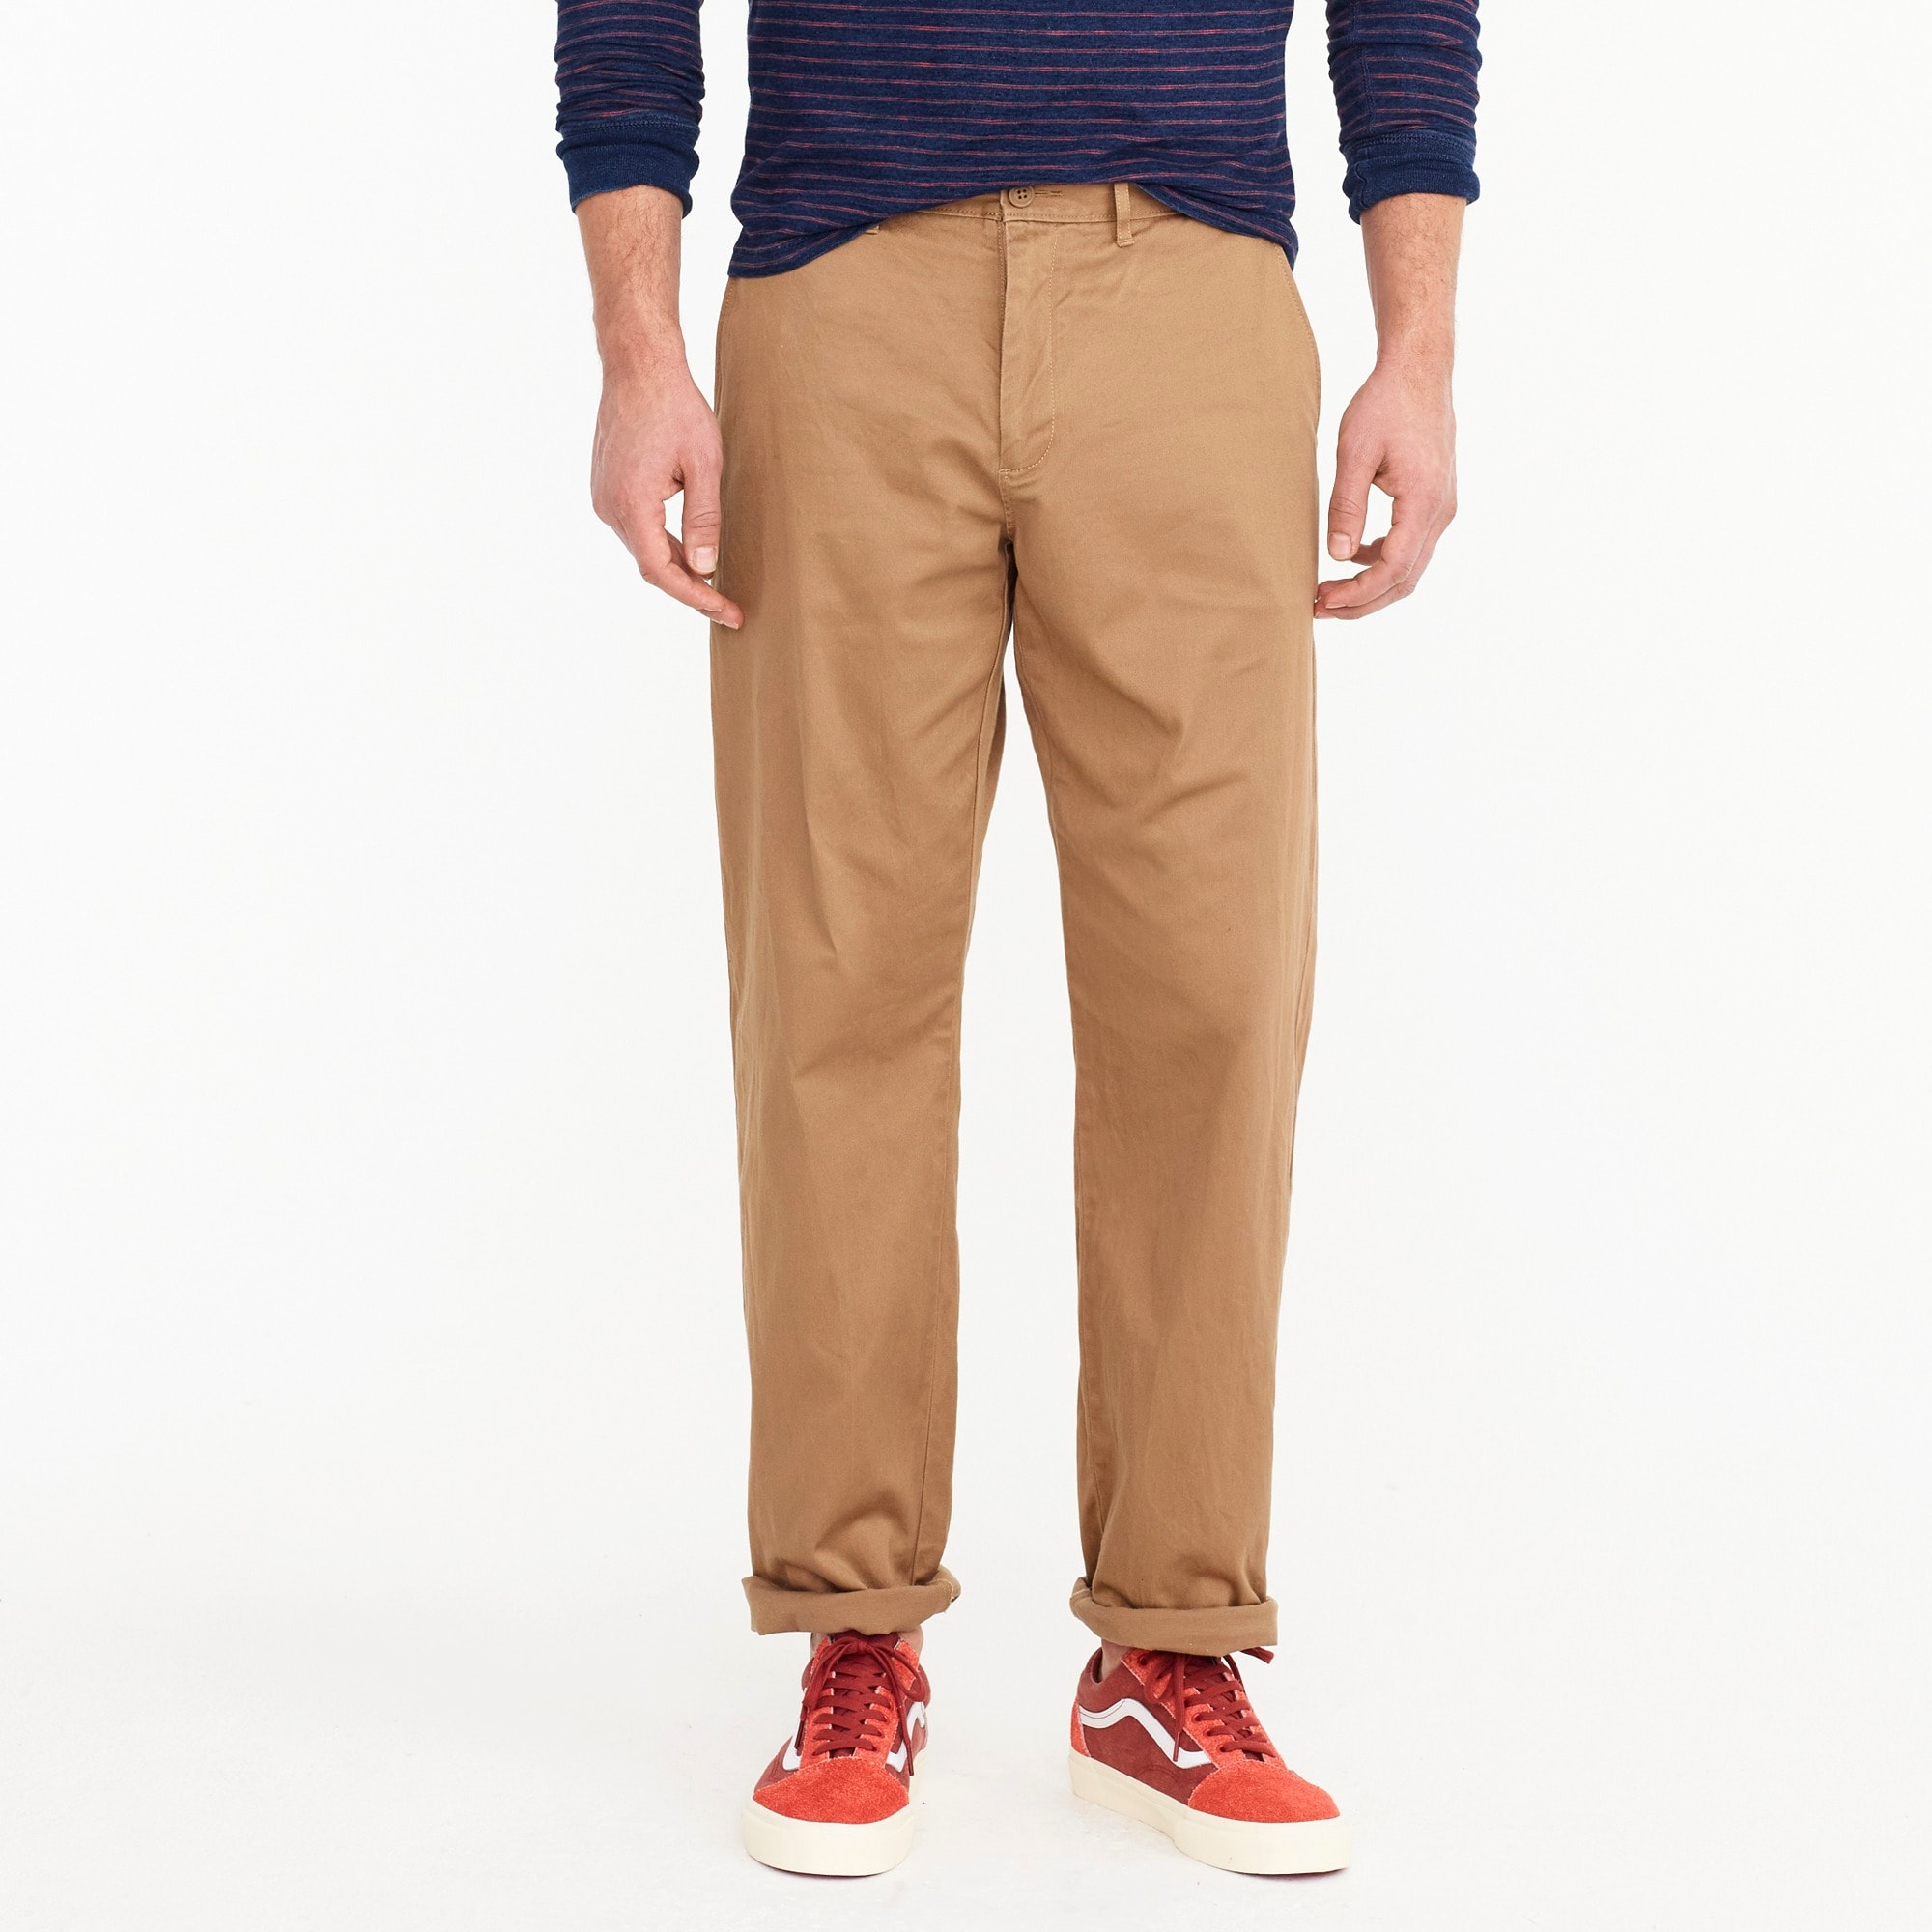 men's relaxed fit stretch chino - men's pants